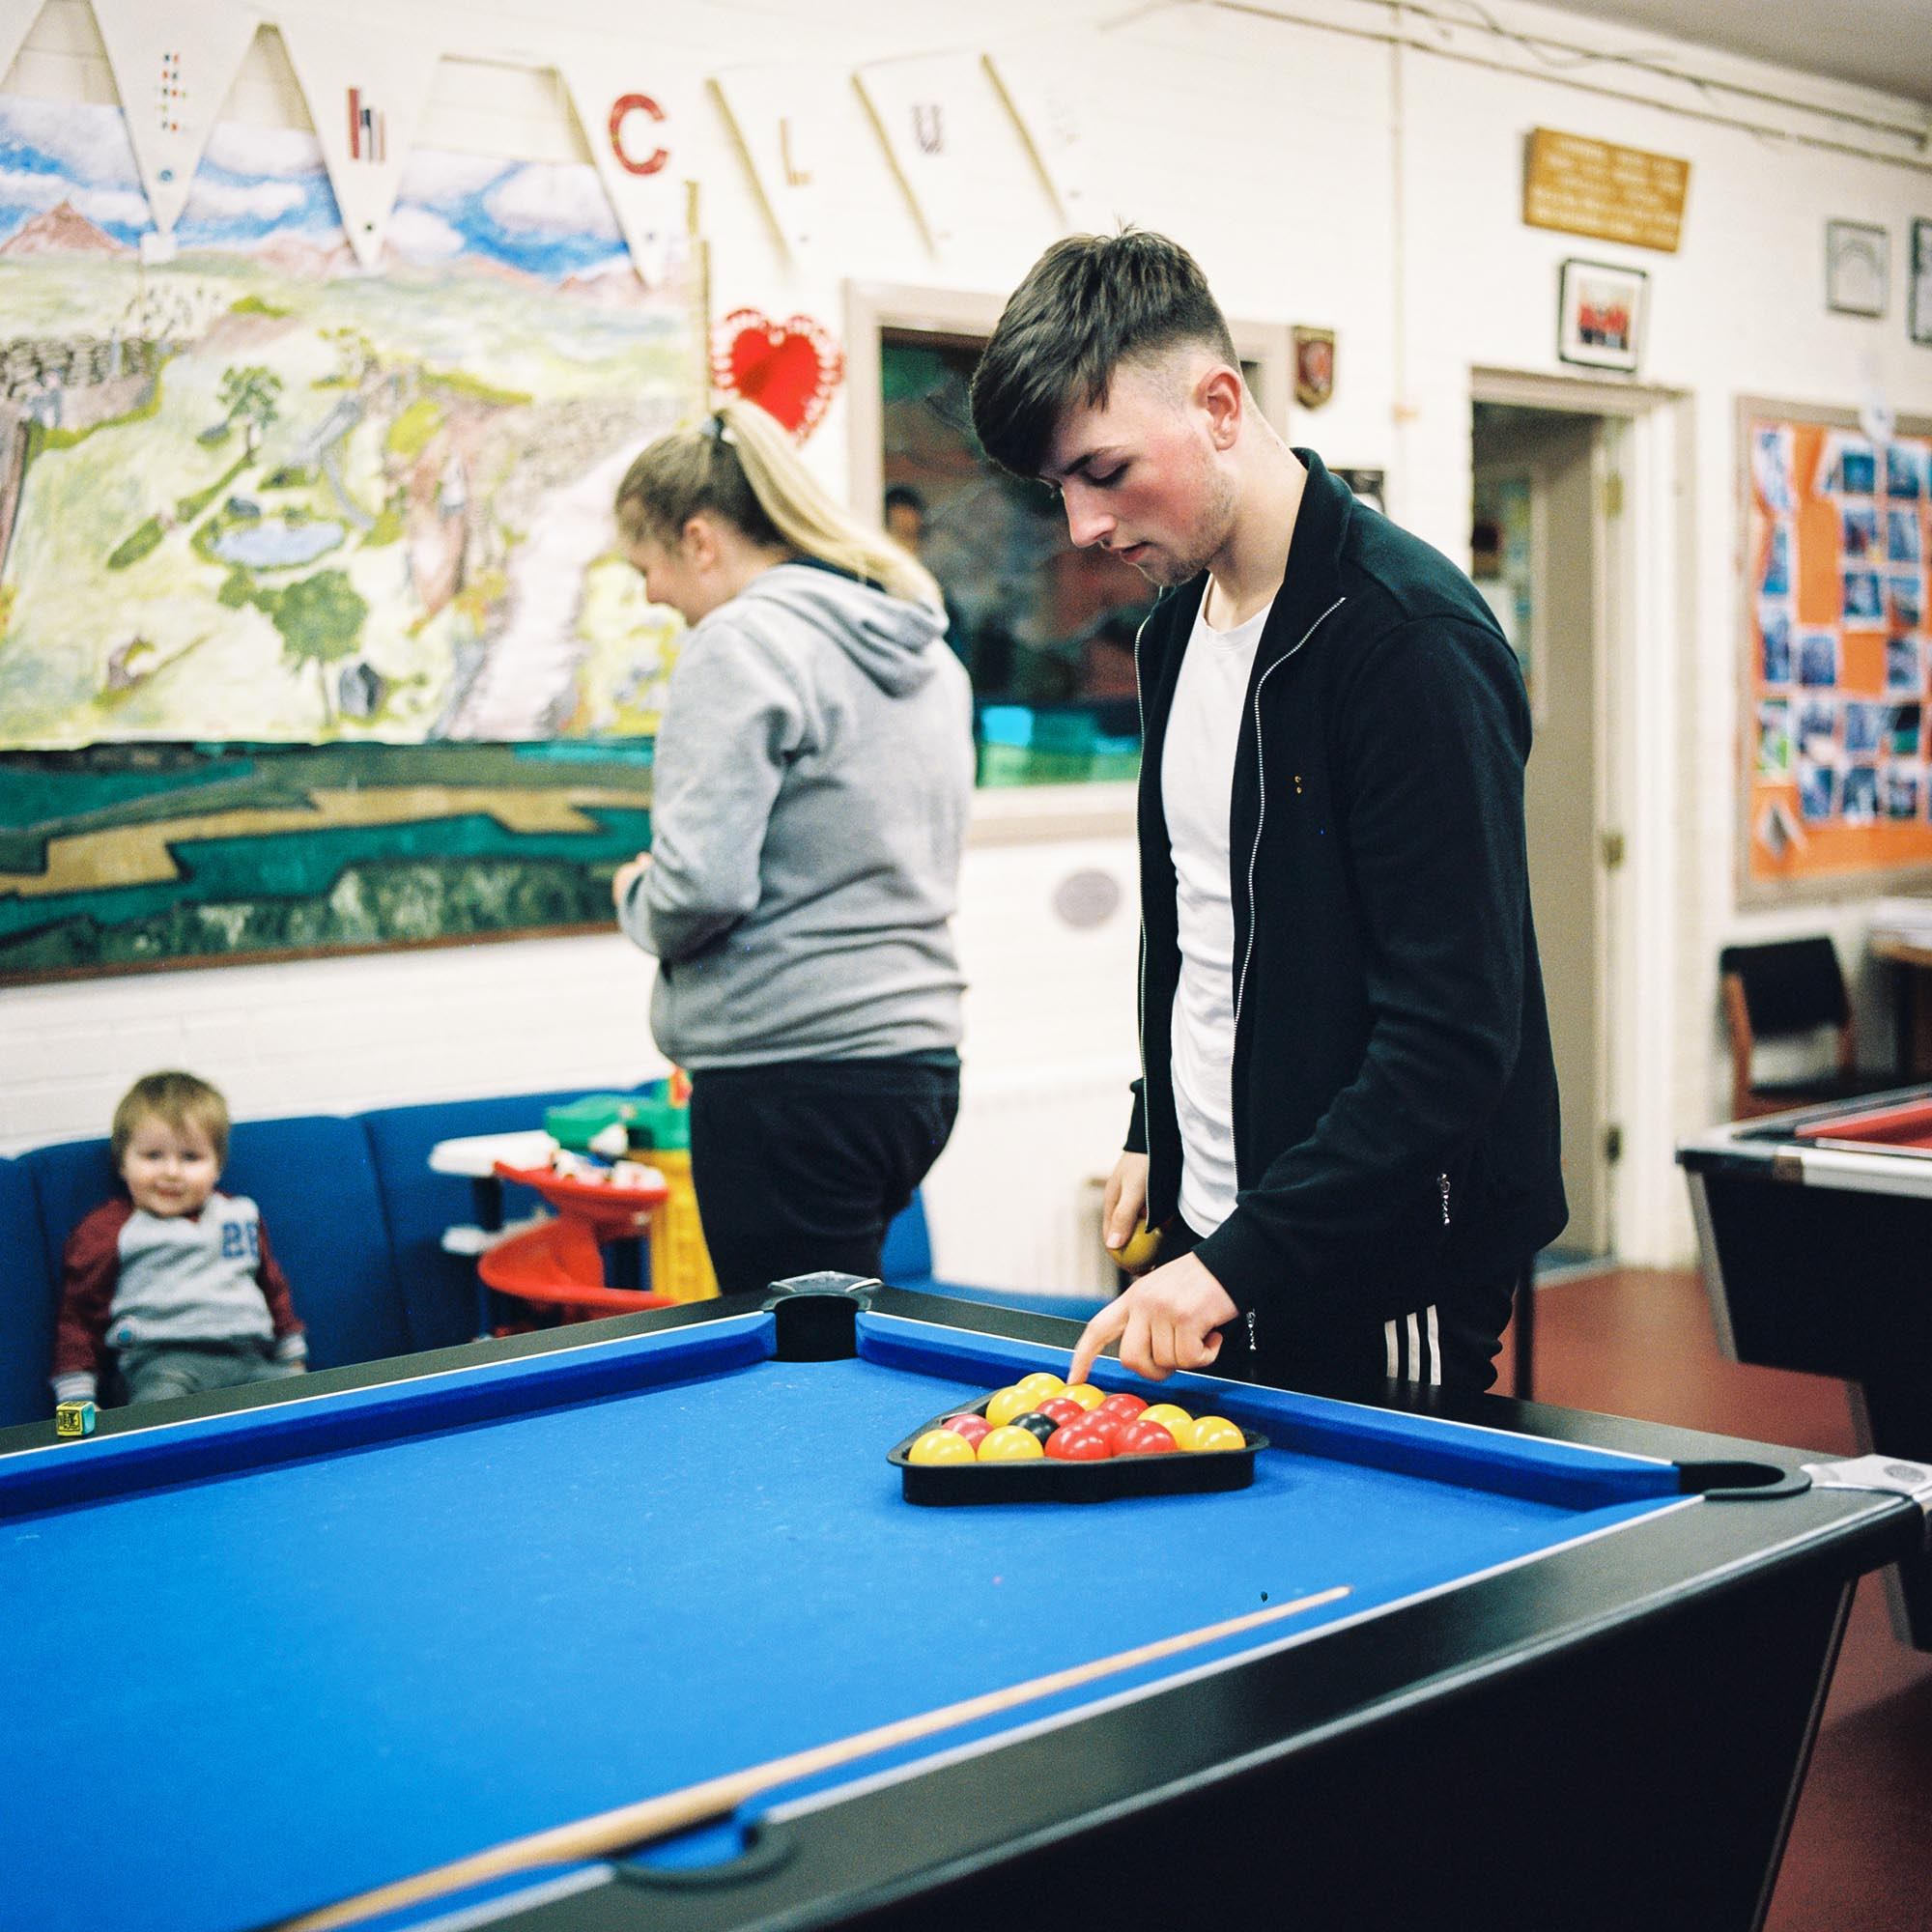 Daniel Pritchard at The Fountain Estate Youth Club, Derry